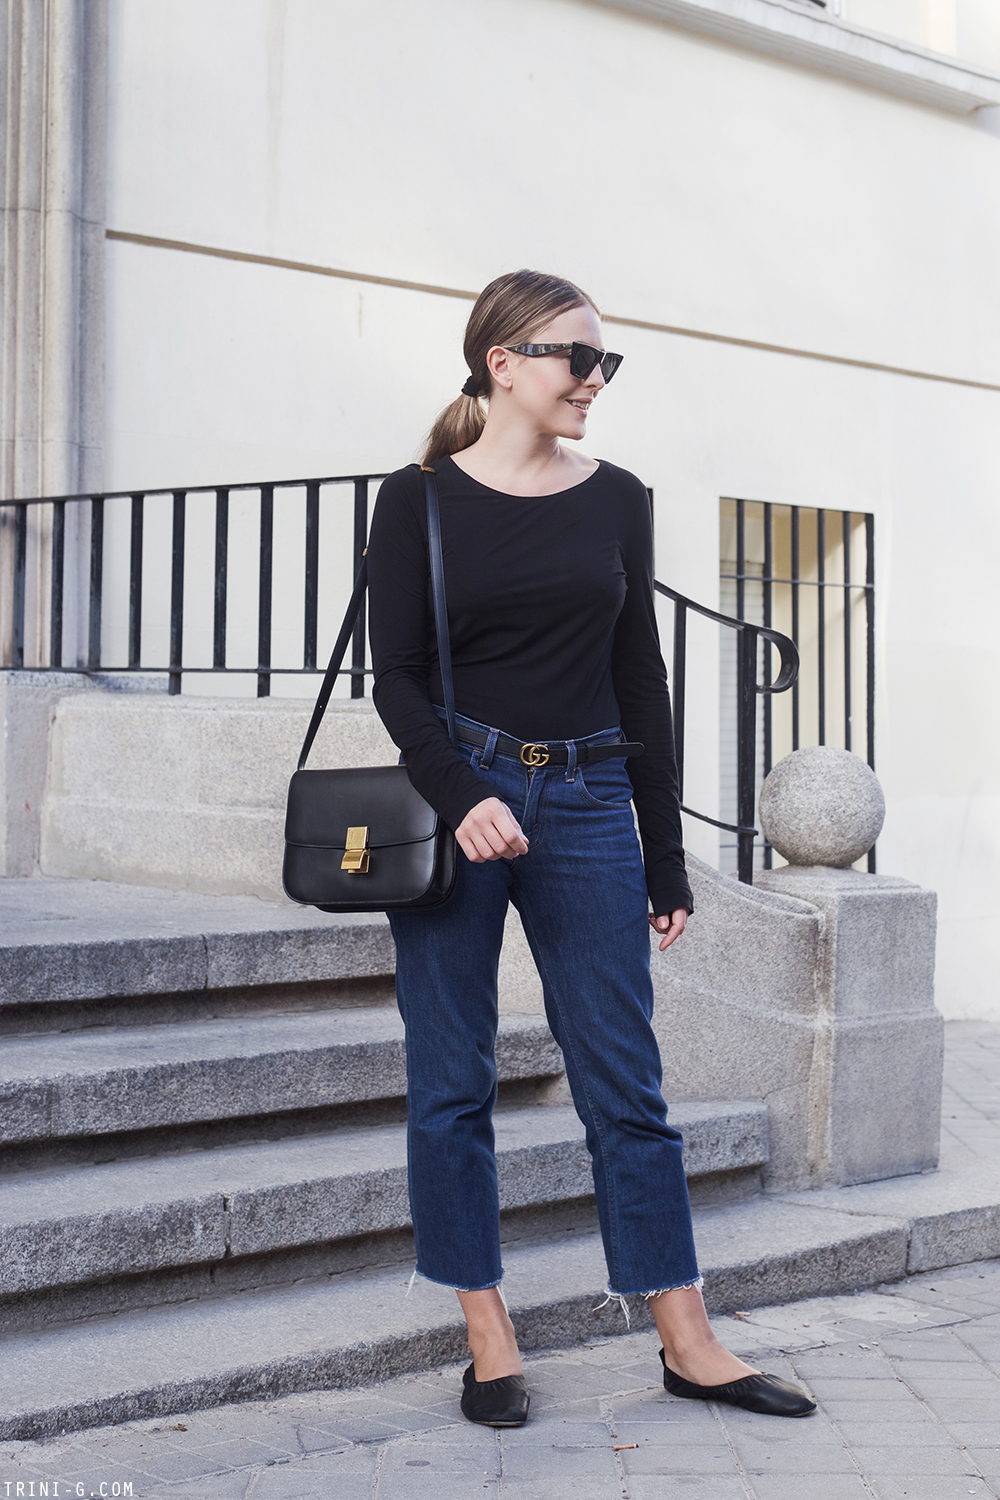 Trini | Wolford top Levi's jeans